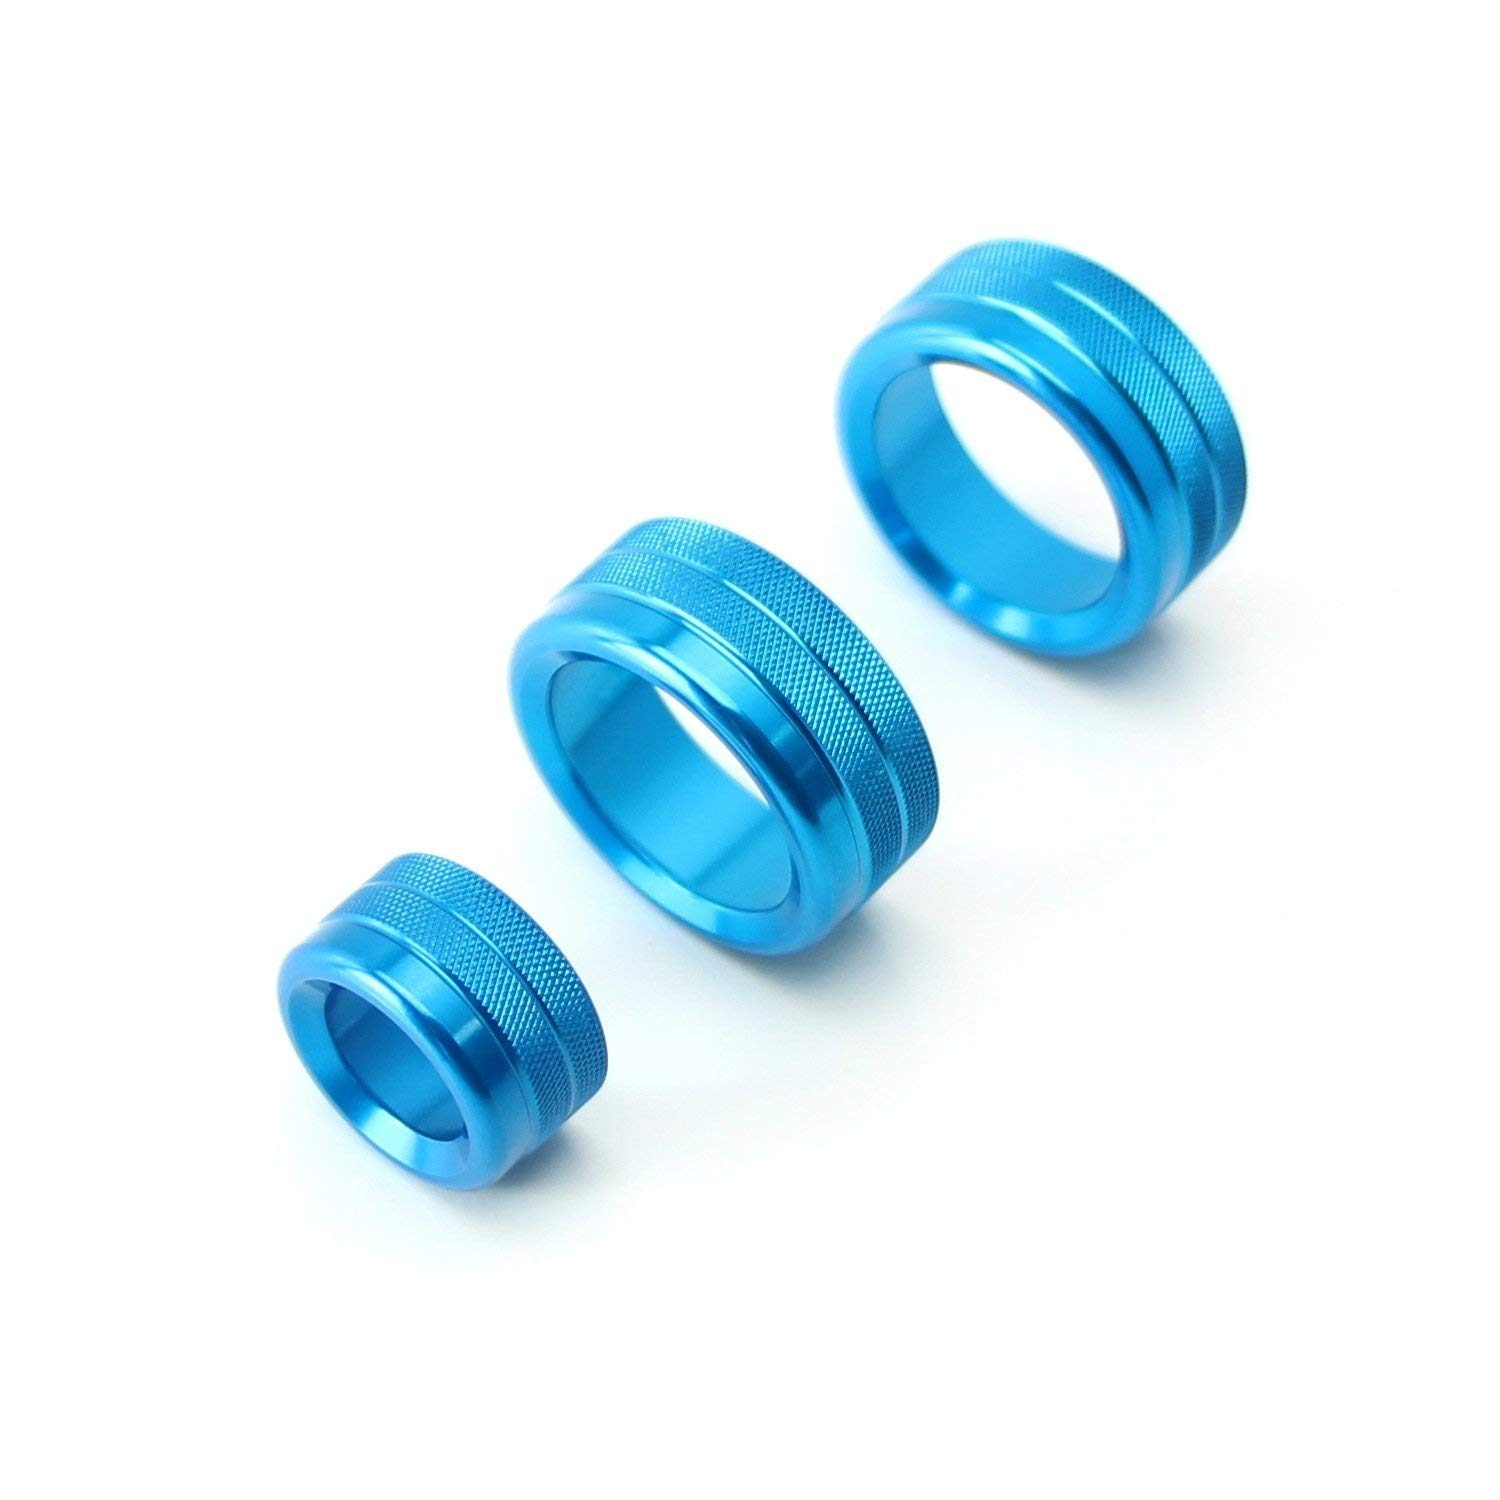 F25 F26 F15 F16 iJDMTOY 3pcs Blue Anodized Aluminum AC Climate Control and Radio Volume Knob Ring Covers For 2014//2015-up BMW X3 X4 X5 X6